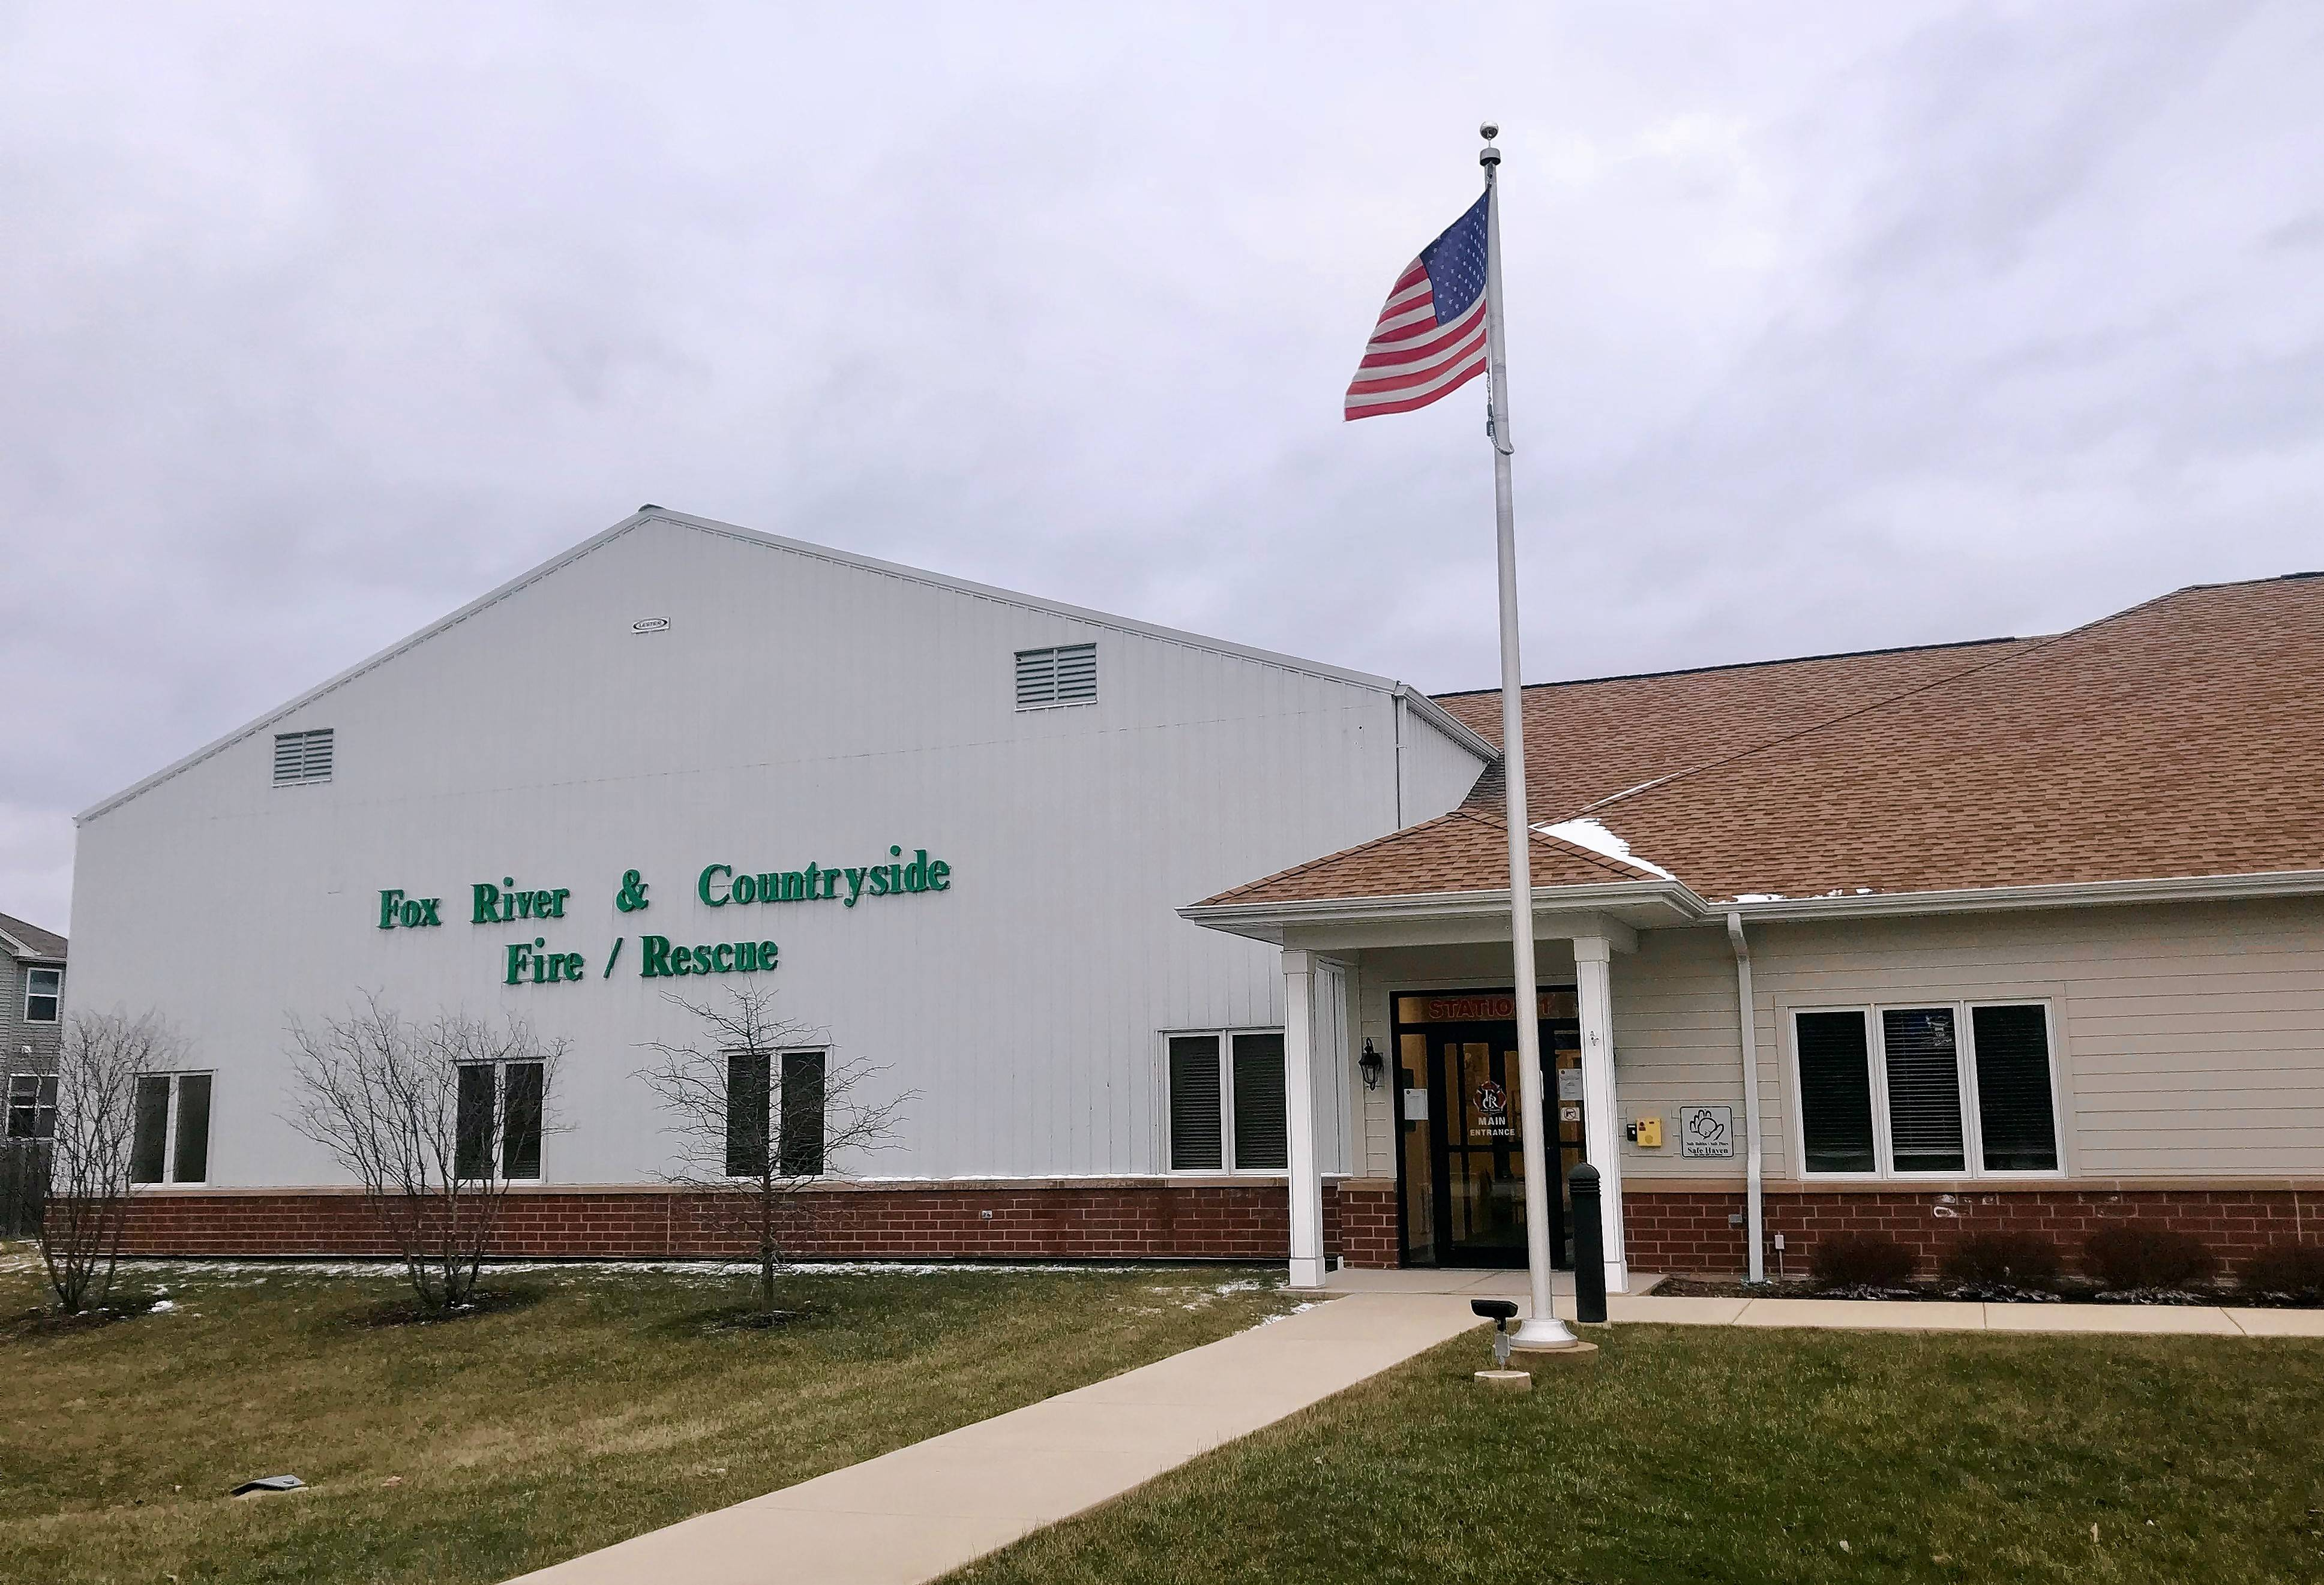 Voters on Tuesday again rejected the Fox River and Countryside Fire/Rescue District's request for a property tax increase.